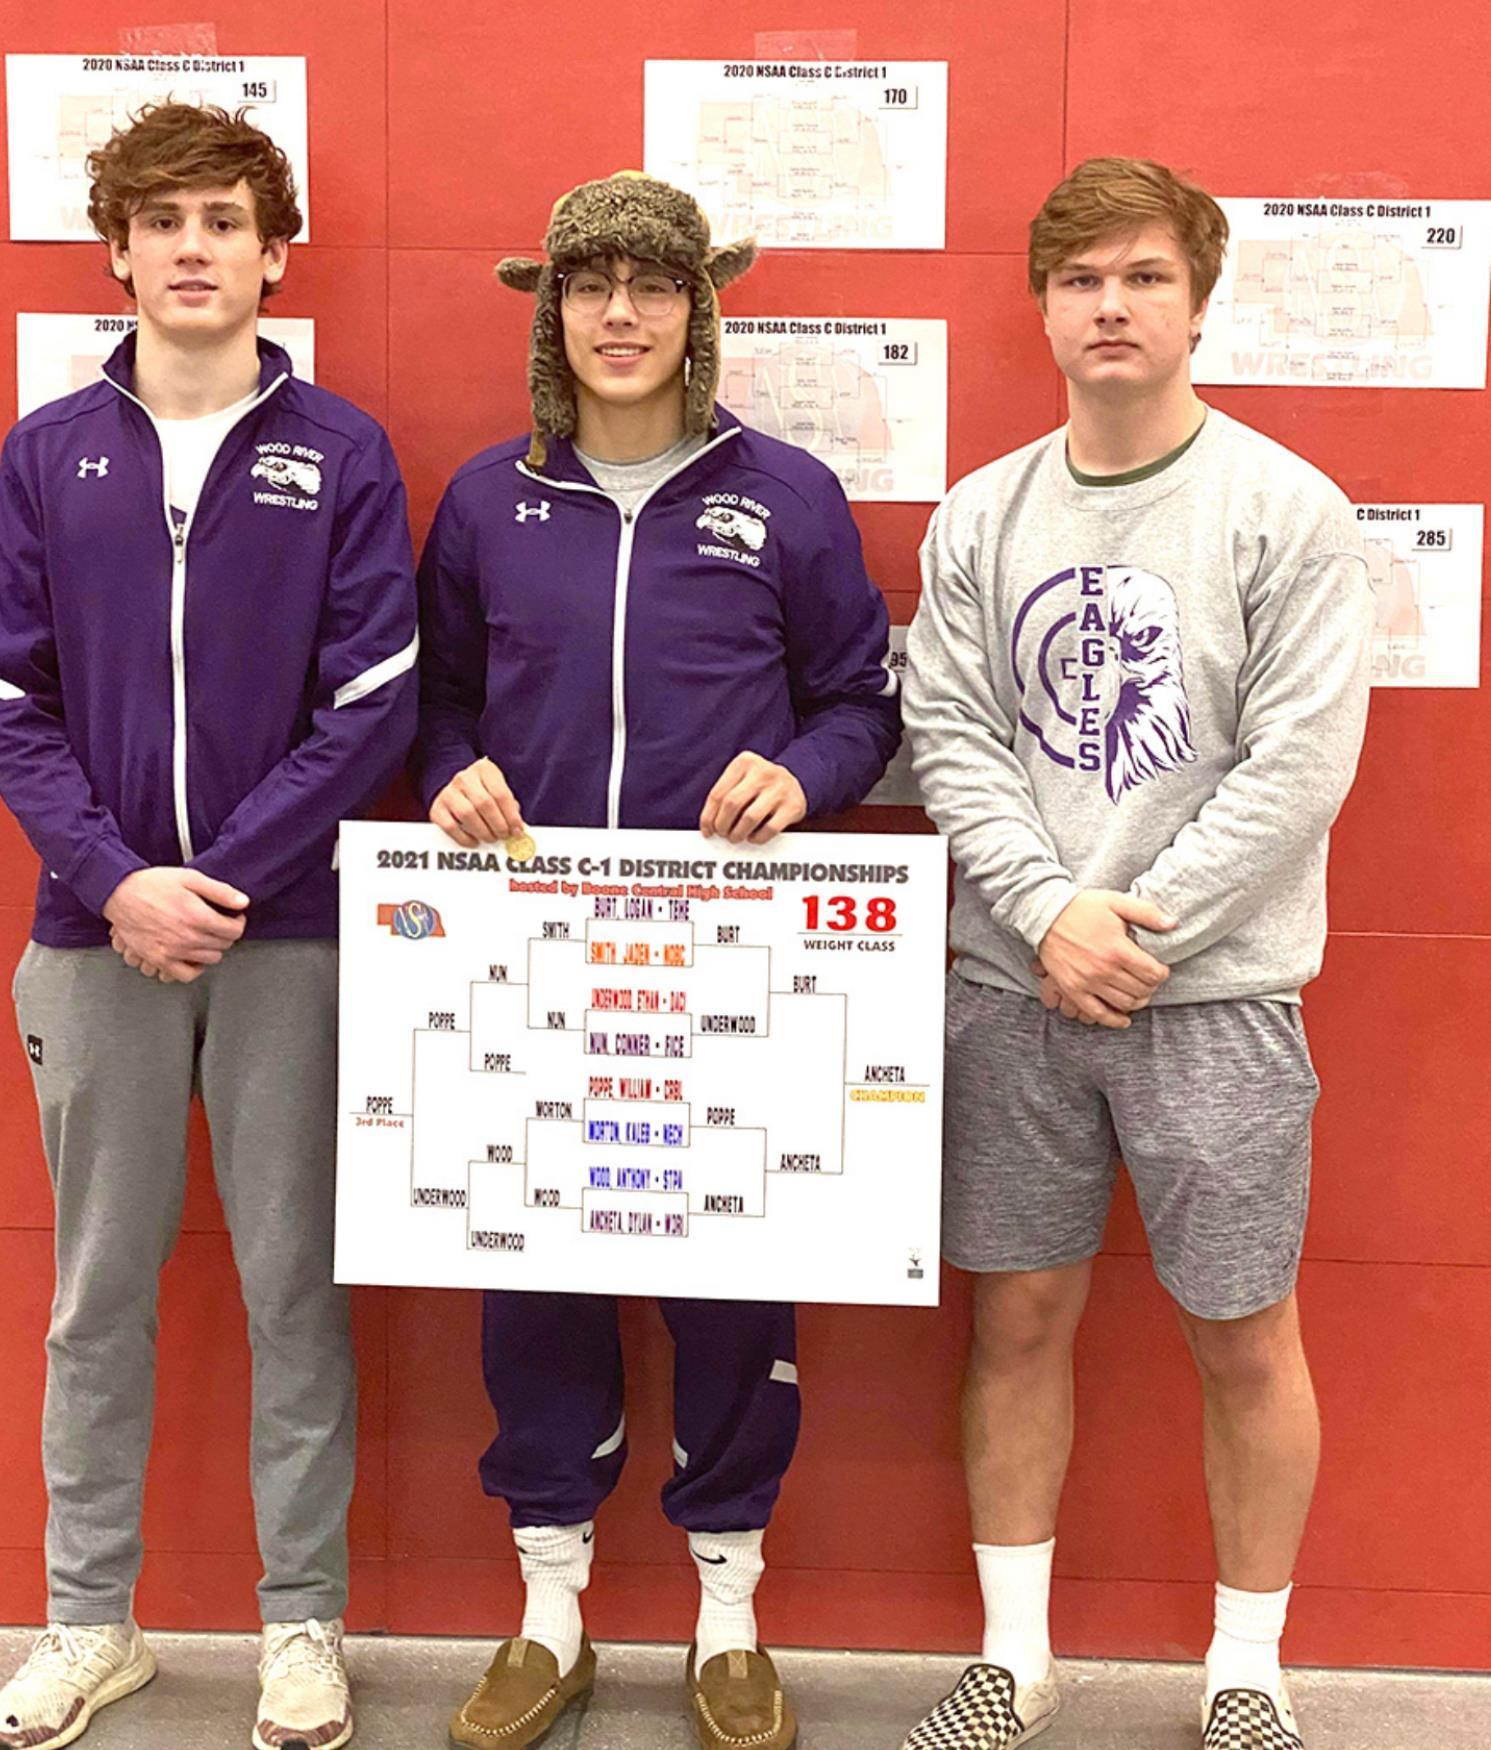 Carson Thompson, Dylan Ancheta, and Eli English will be representing the Wood River Eagles wrestling team at the state tournament in Omaha this Friday and Saturday.